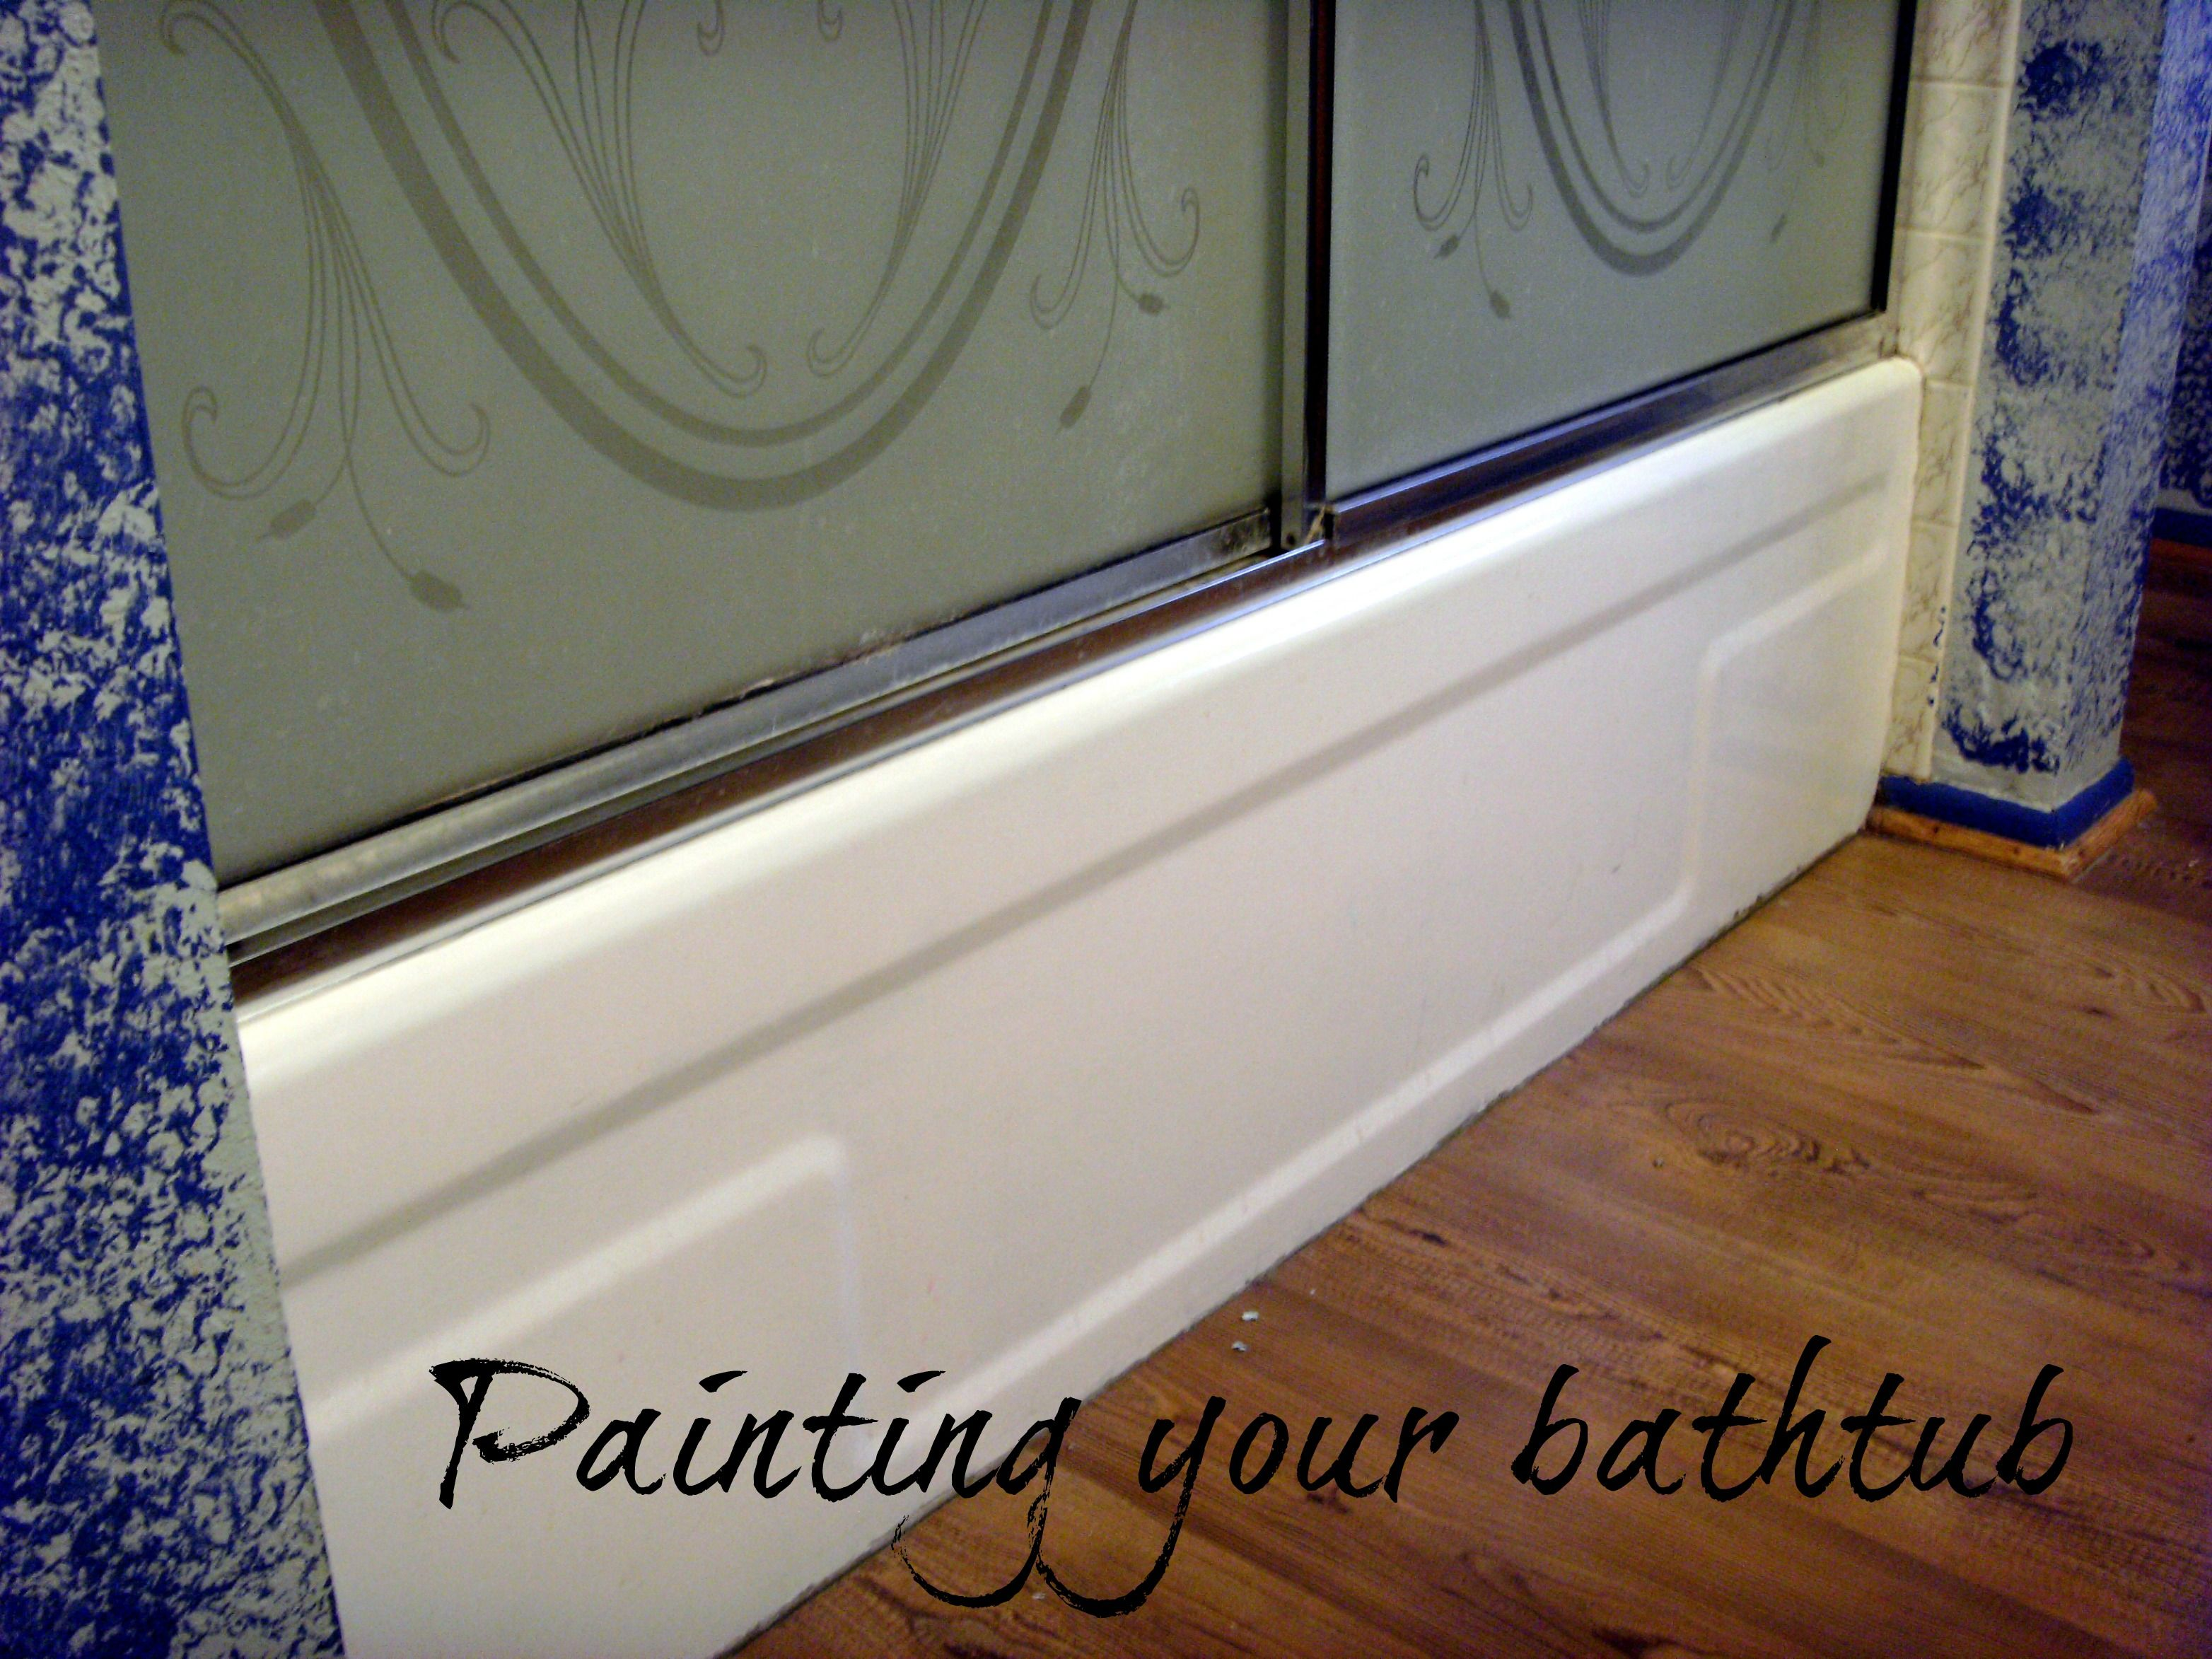 Beautiful Painting A Bathtub Thick Paint A Bathtub Square Tub Refinishers Can You Paint A Tub Old Paint For A Bathtub Purple How To Paint A Bath Tub